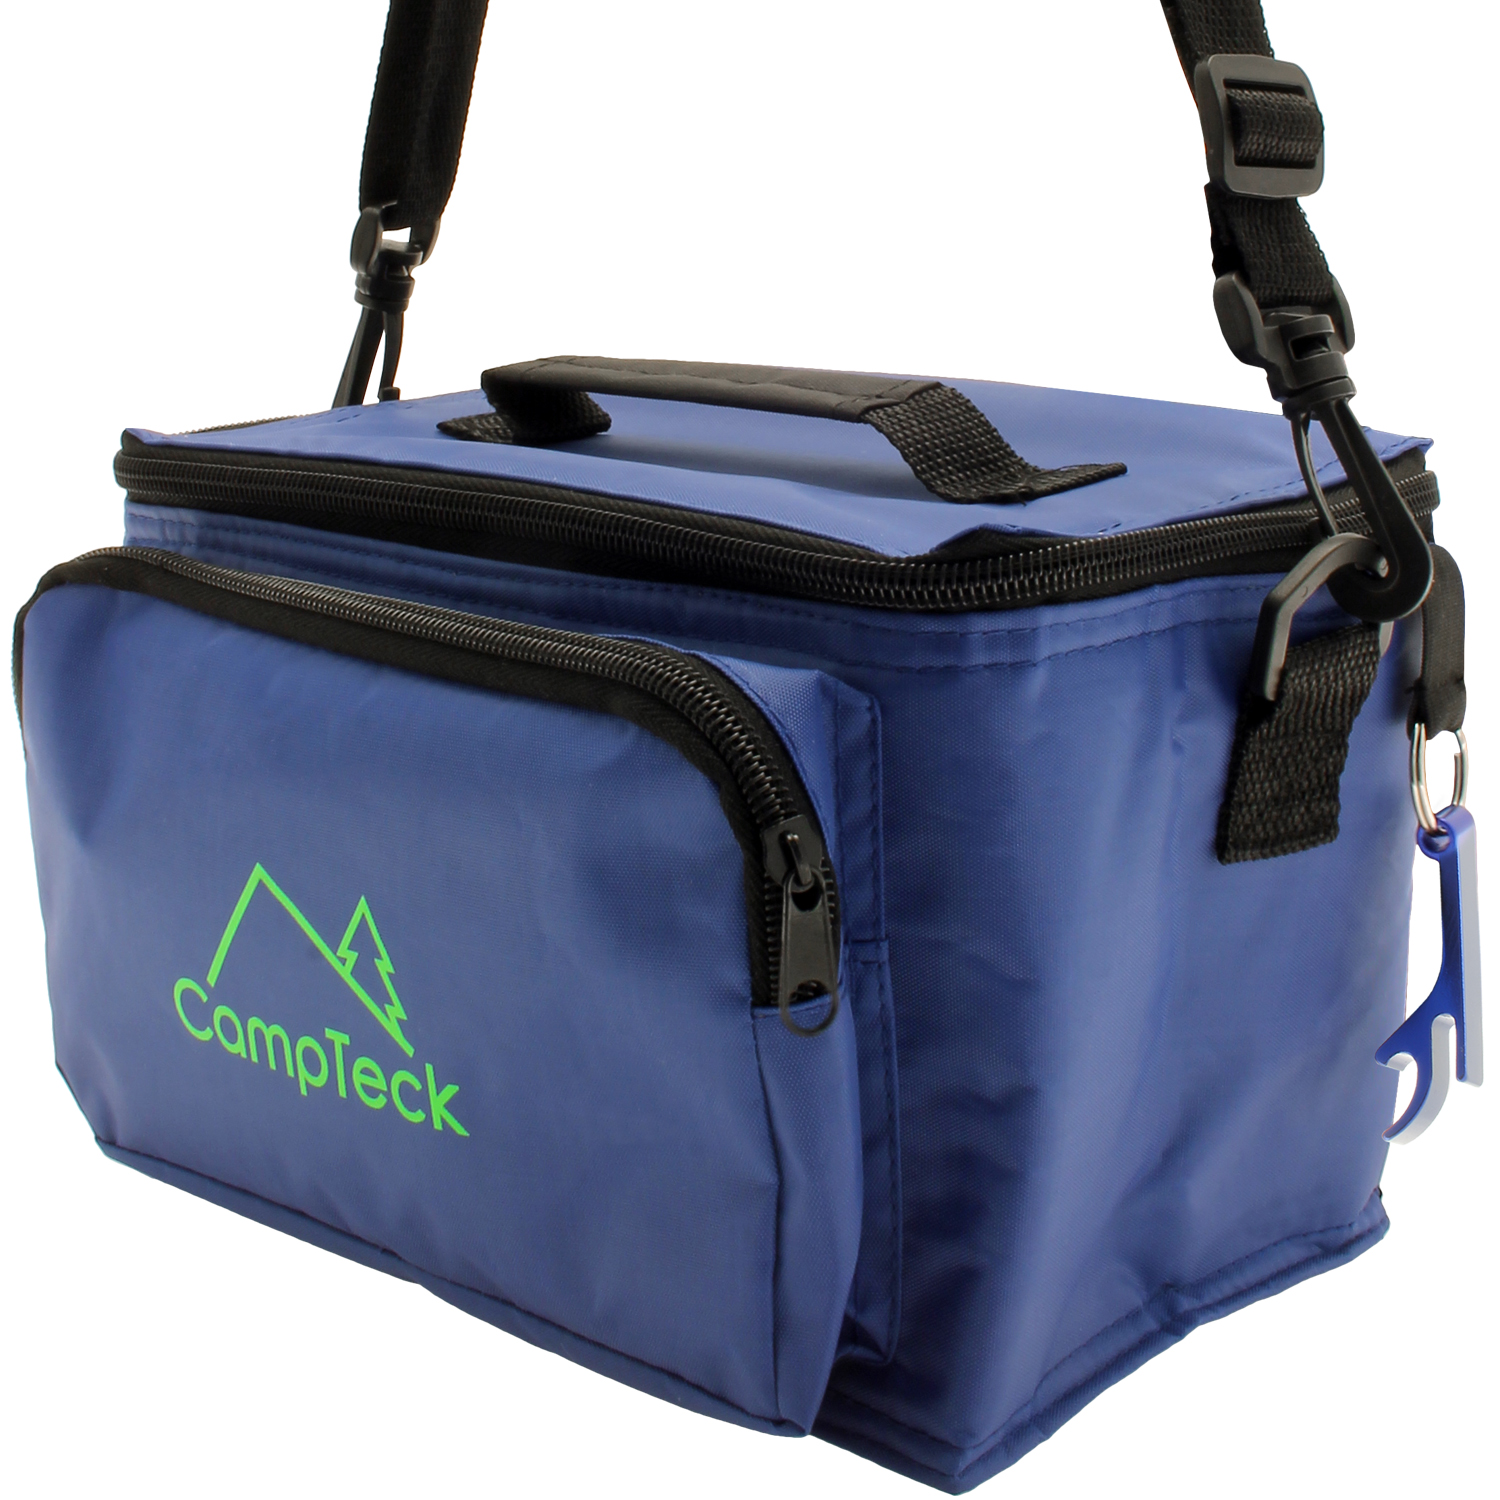 CampTeck Compact & Lightweight Water Resistant 3.5L Leak-Proof Blue Cool Bag with Carry Handle, Strap & Bottle Opener